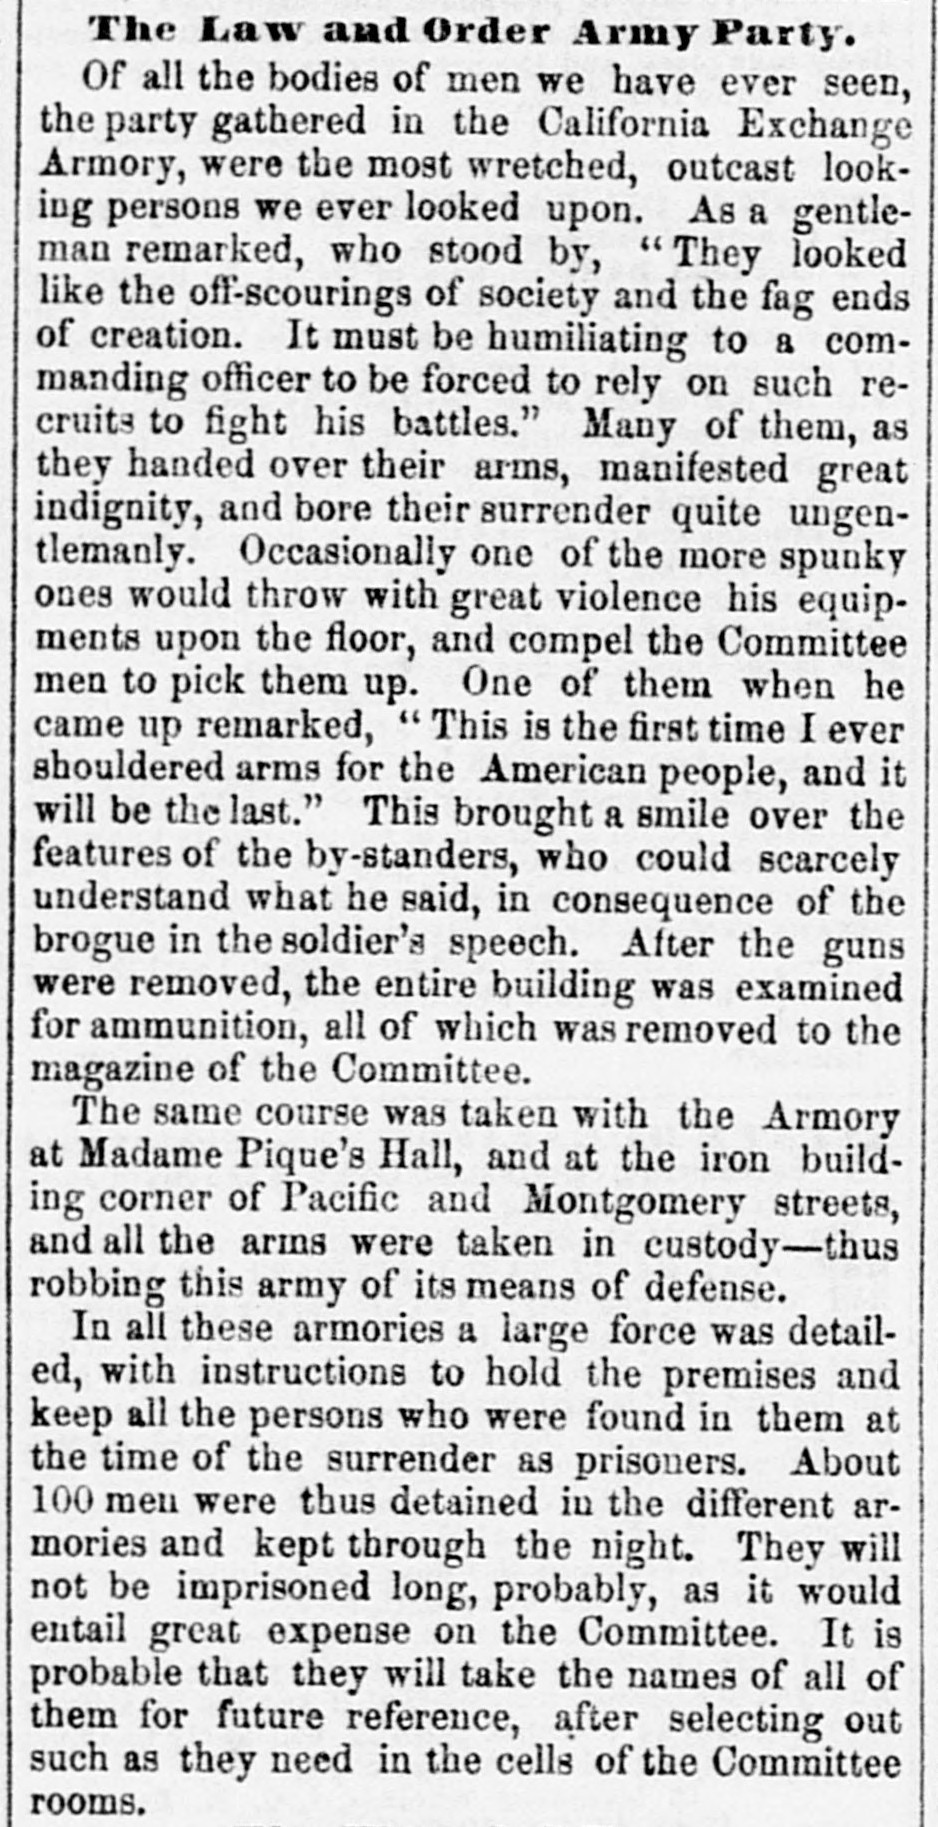 """Excerpt from """"Events of Yesterday,""""   Daily Alta California , 22 June 1856, p. 2. Source:  California Digital Newspaper Collection  [Note: The image here, selected because of its superior legibility, is from the  reprint  of the  Alta  story in the  Sacramento Daily Union  of 23 June 1856, under the headline """"The San Francisco Revolution.""""]"""